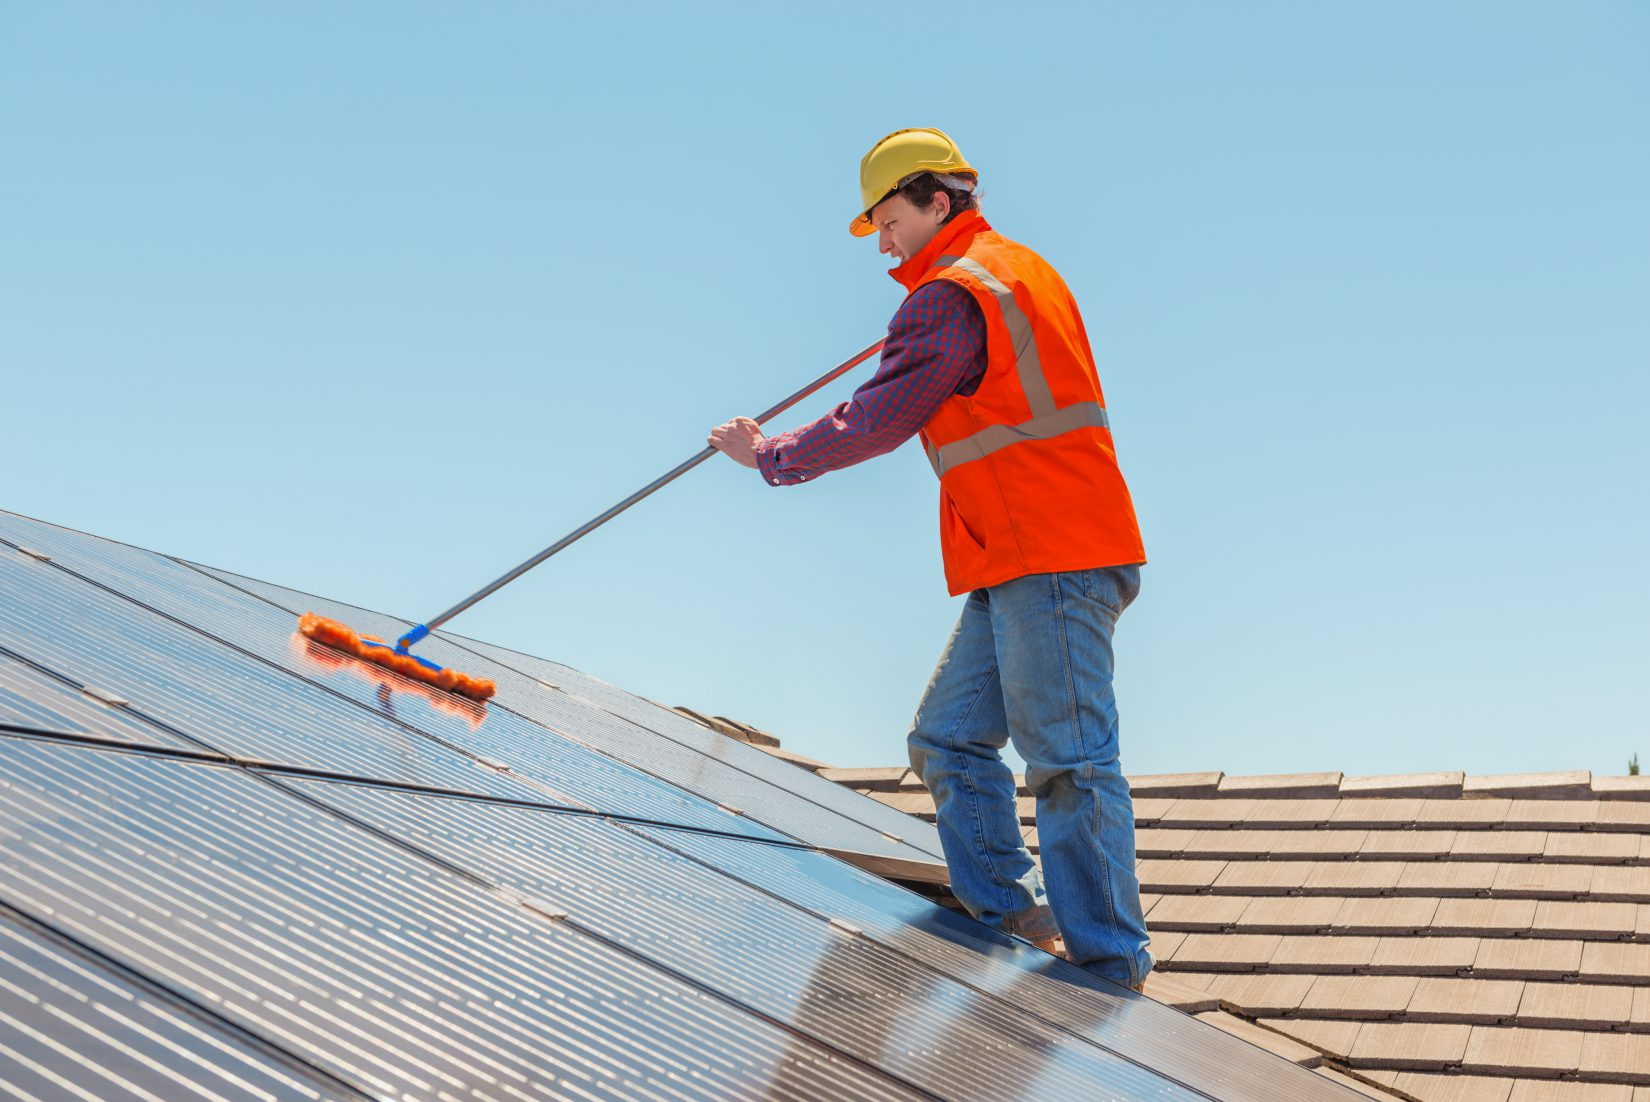 worker cleaning a solar panel on roof